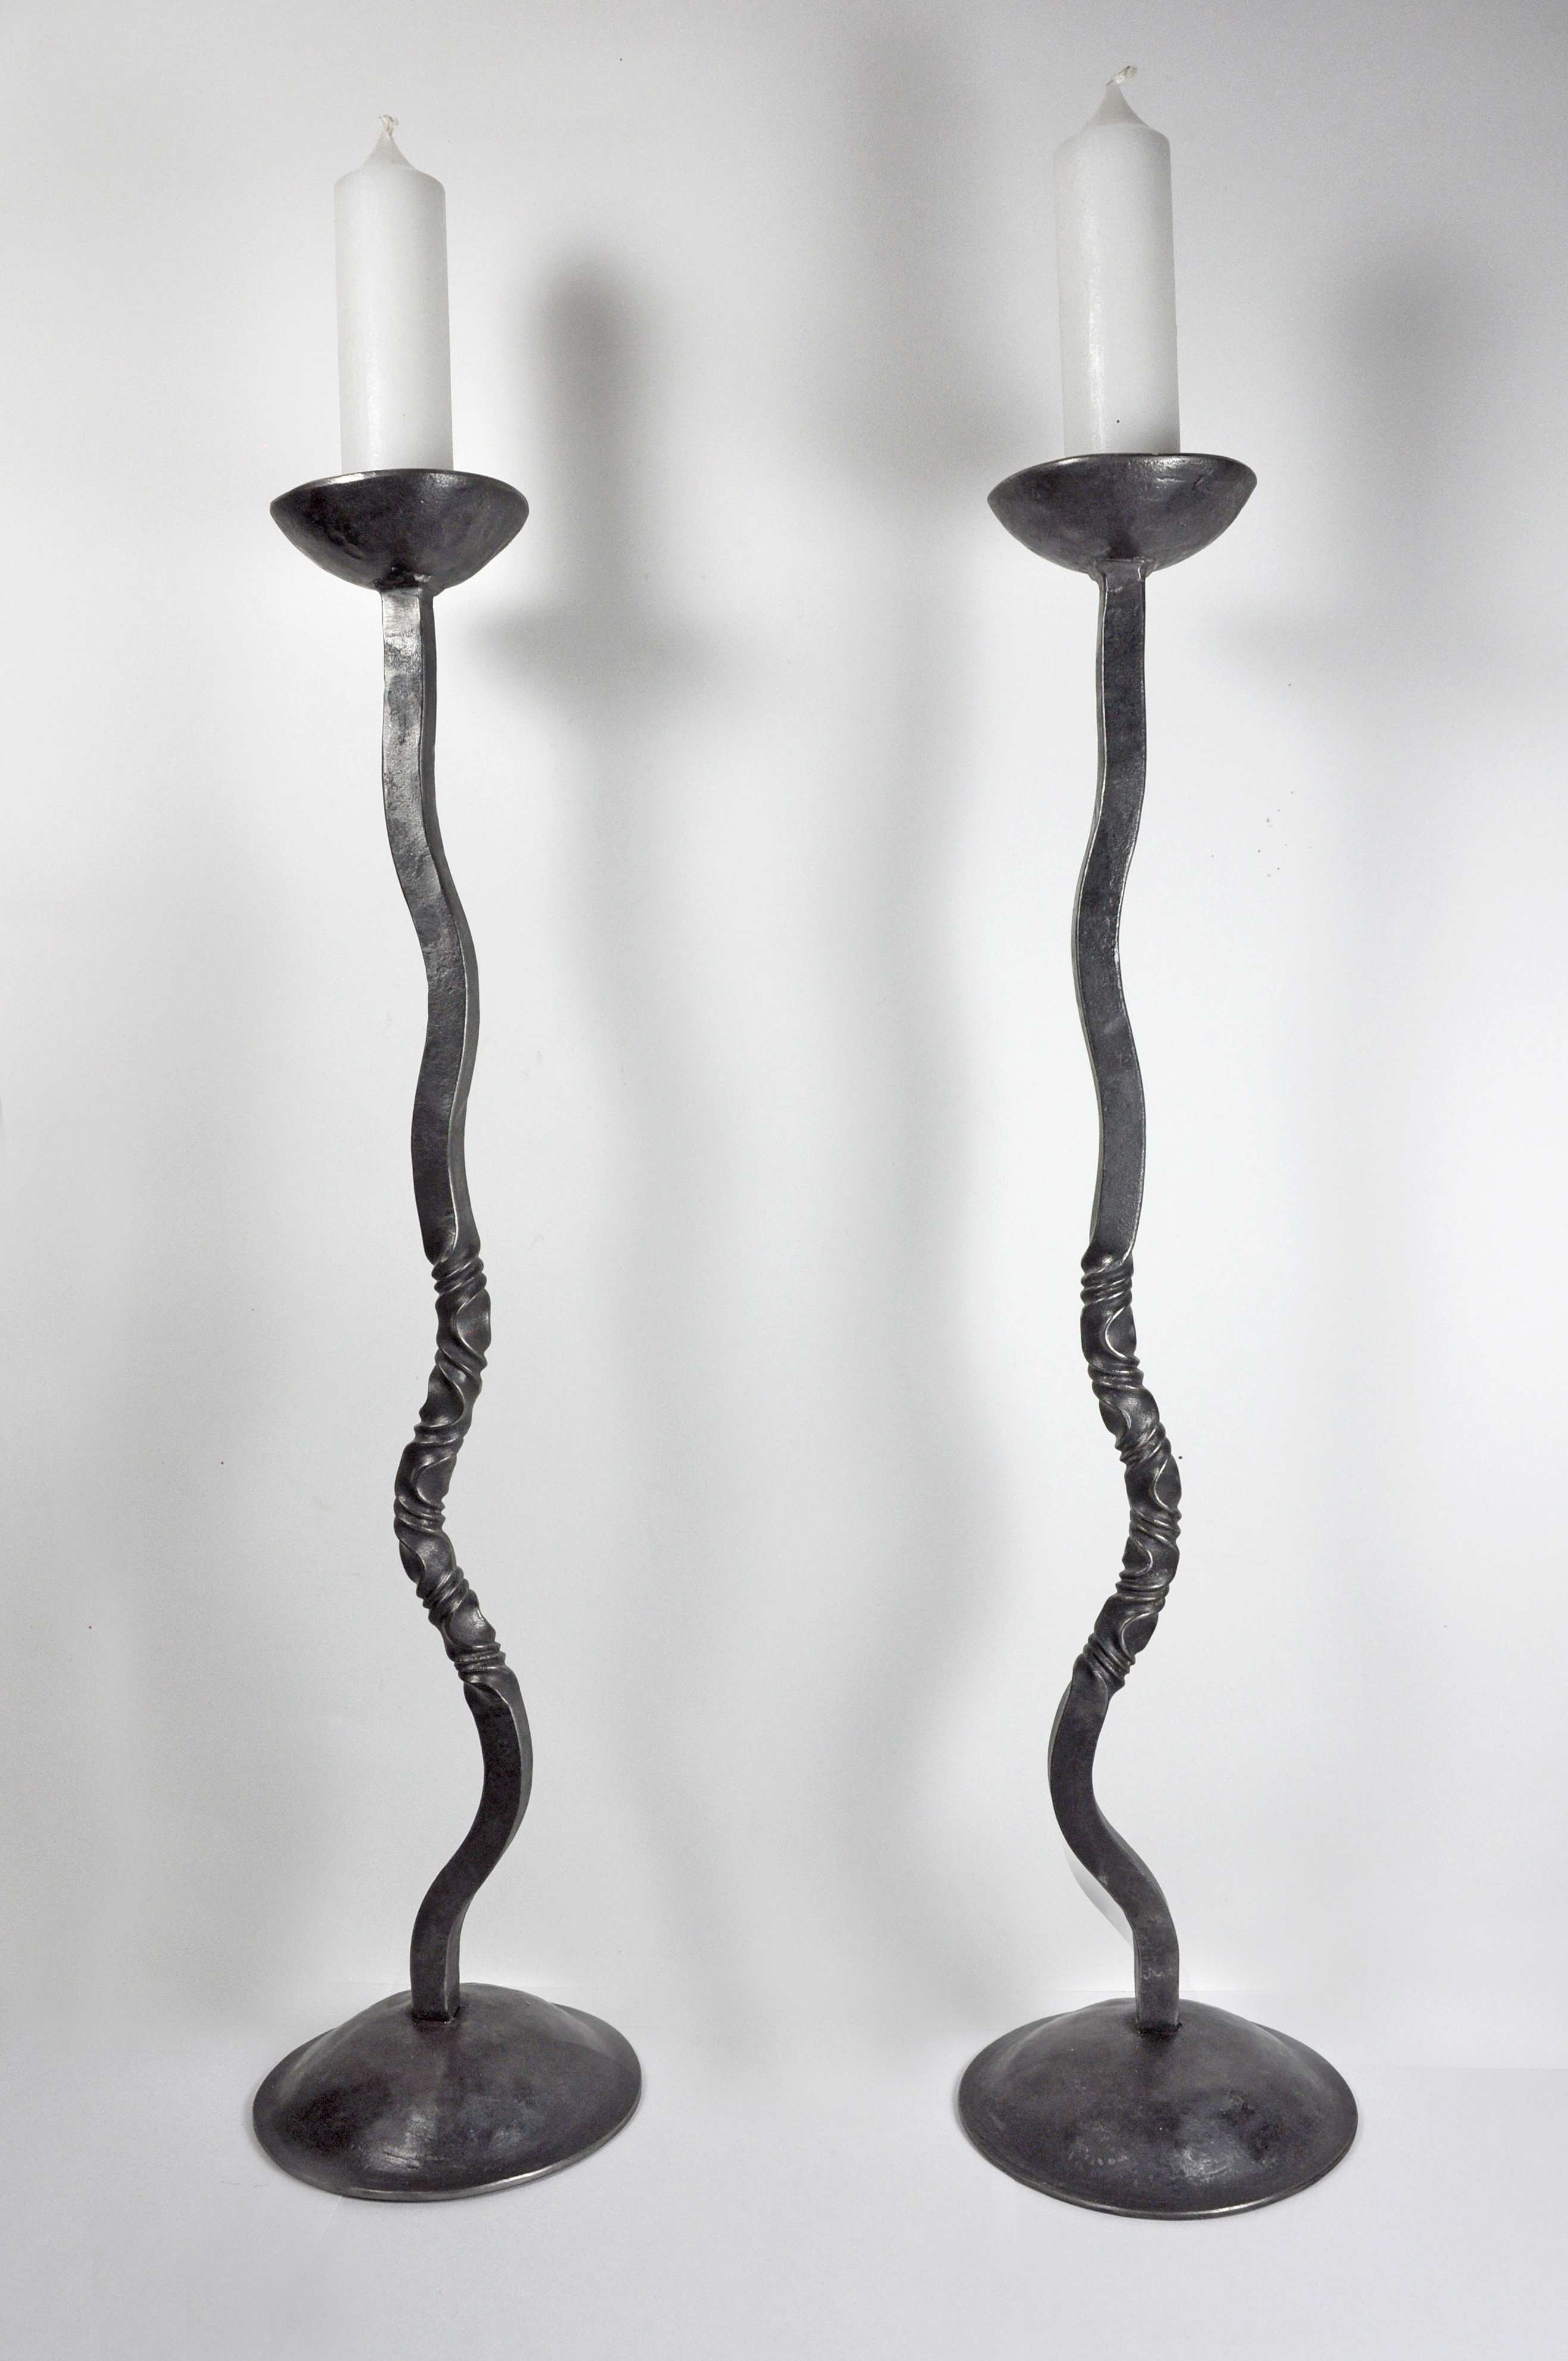 Hand Forged Candle Stick Holder